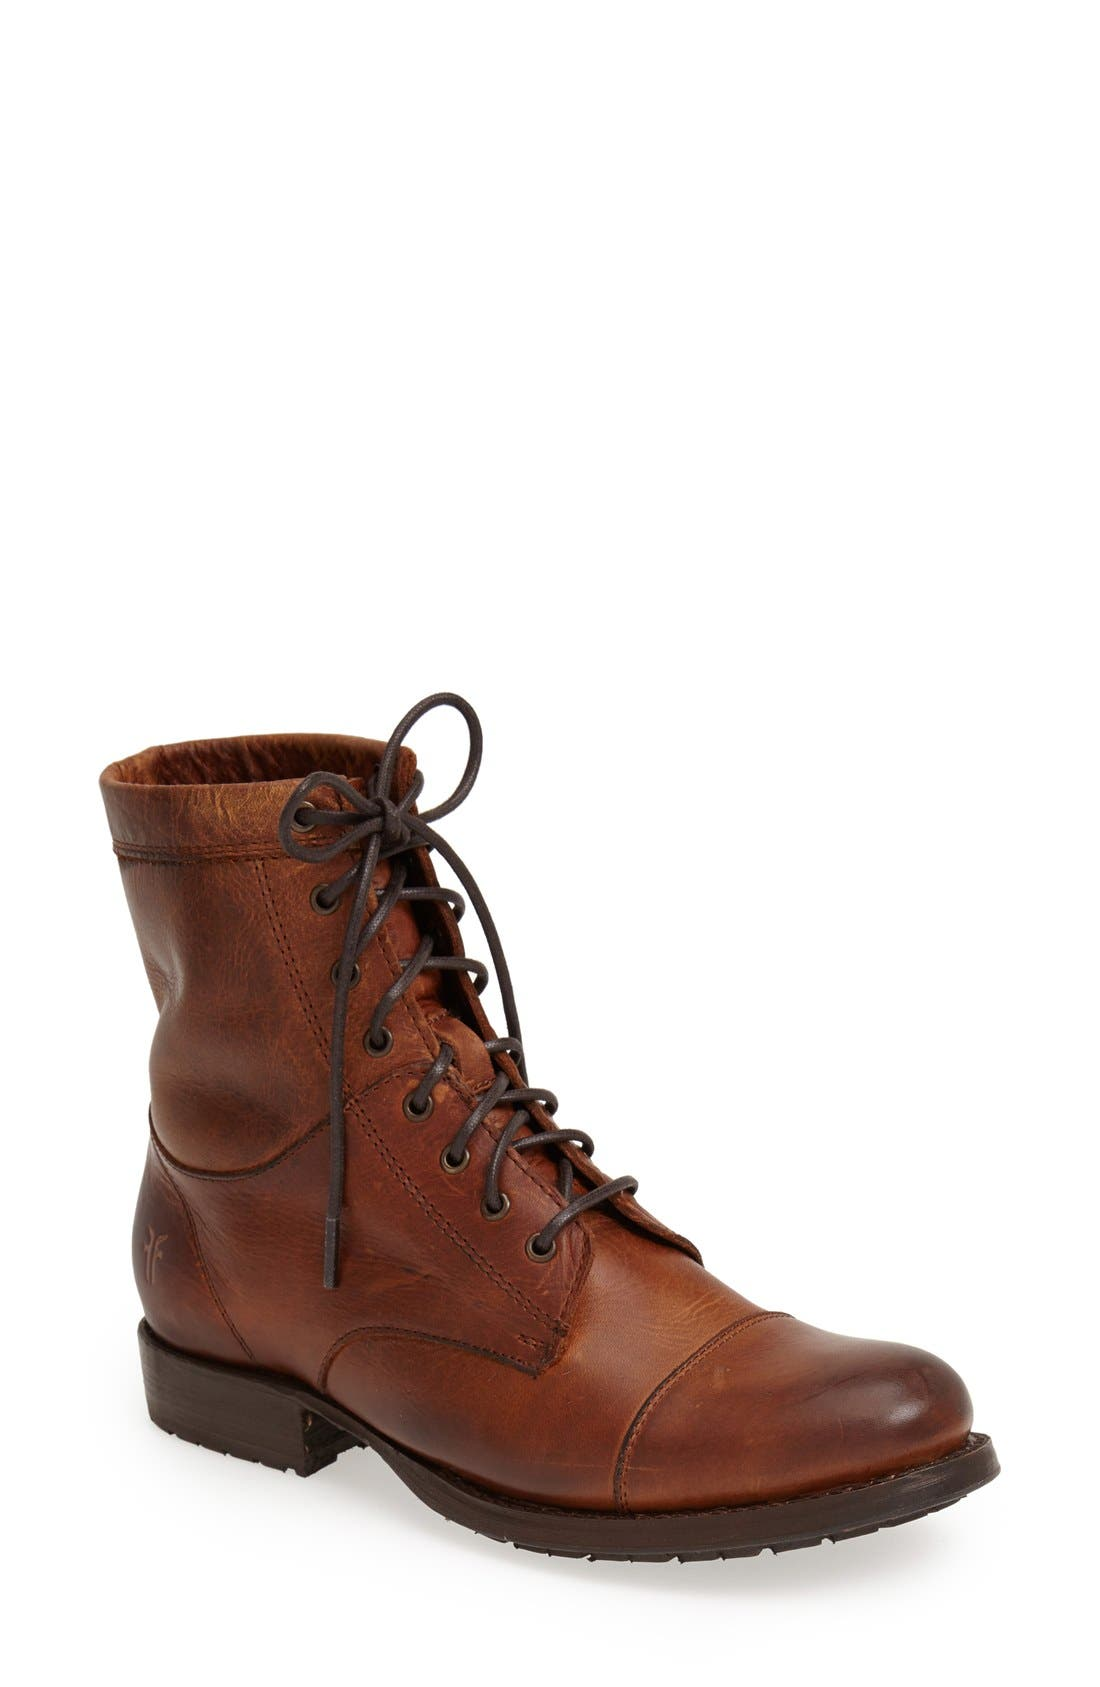 Alternate Image 1 Selected - Frye 'Erin' Cap Toe Leather Lace-Up Boot (Women)